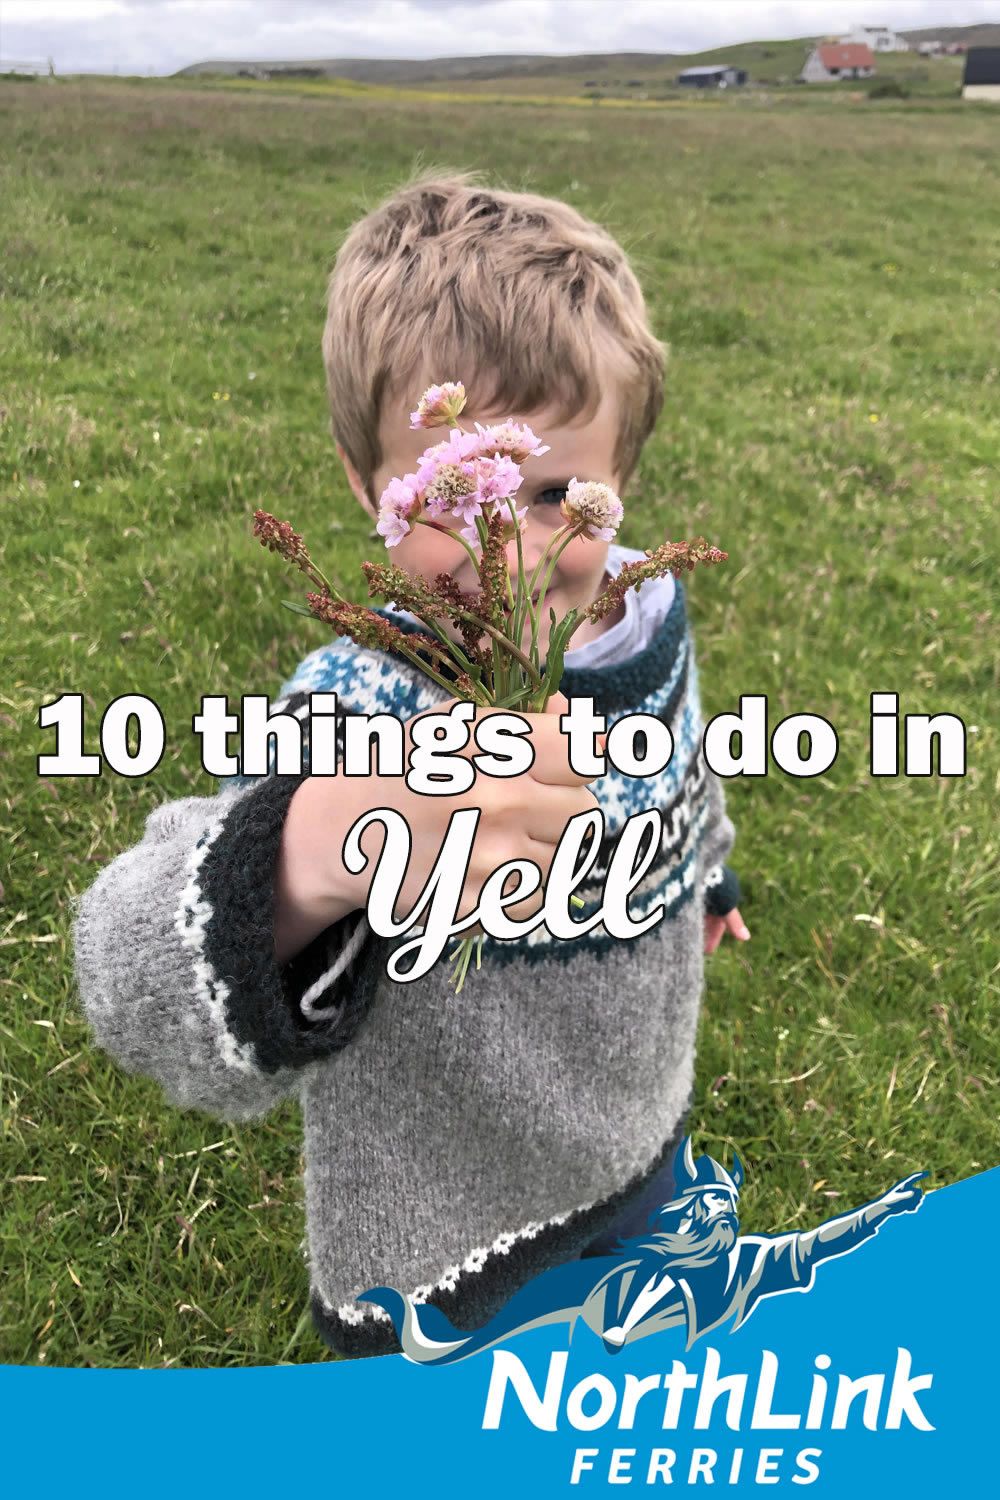 10 things to do in Yell